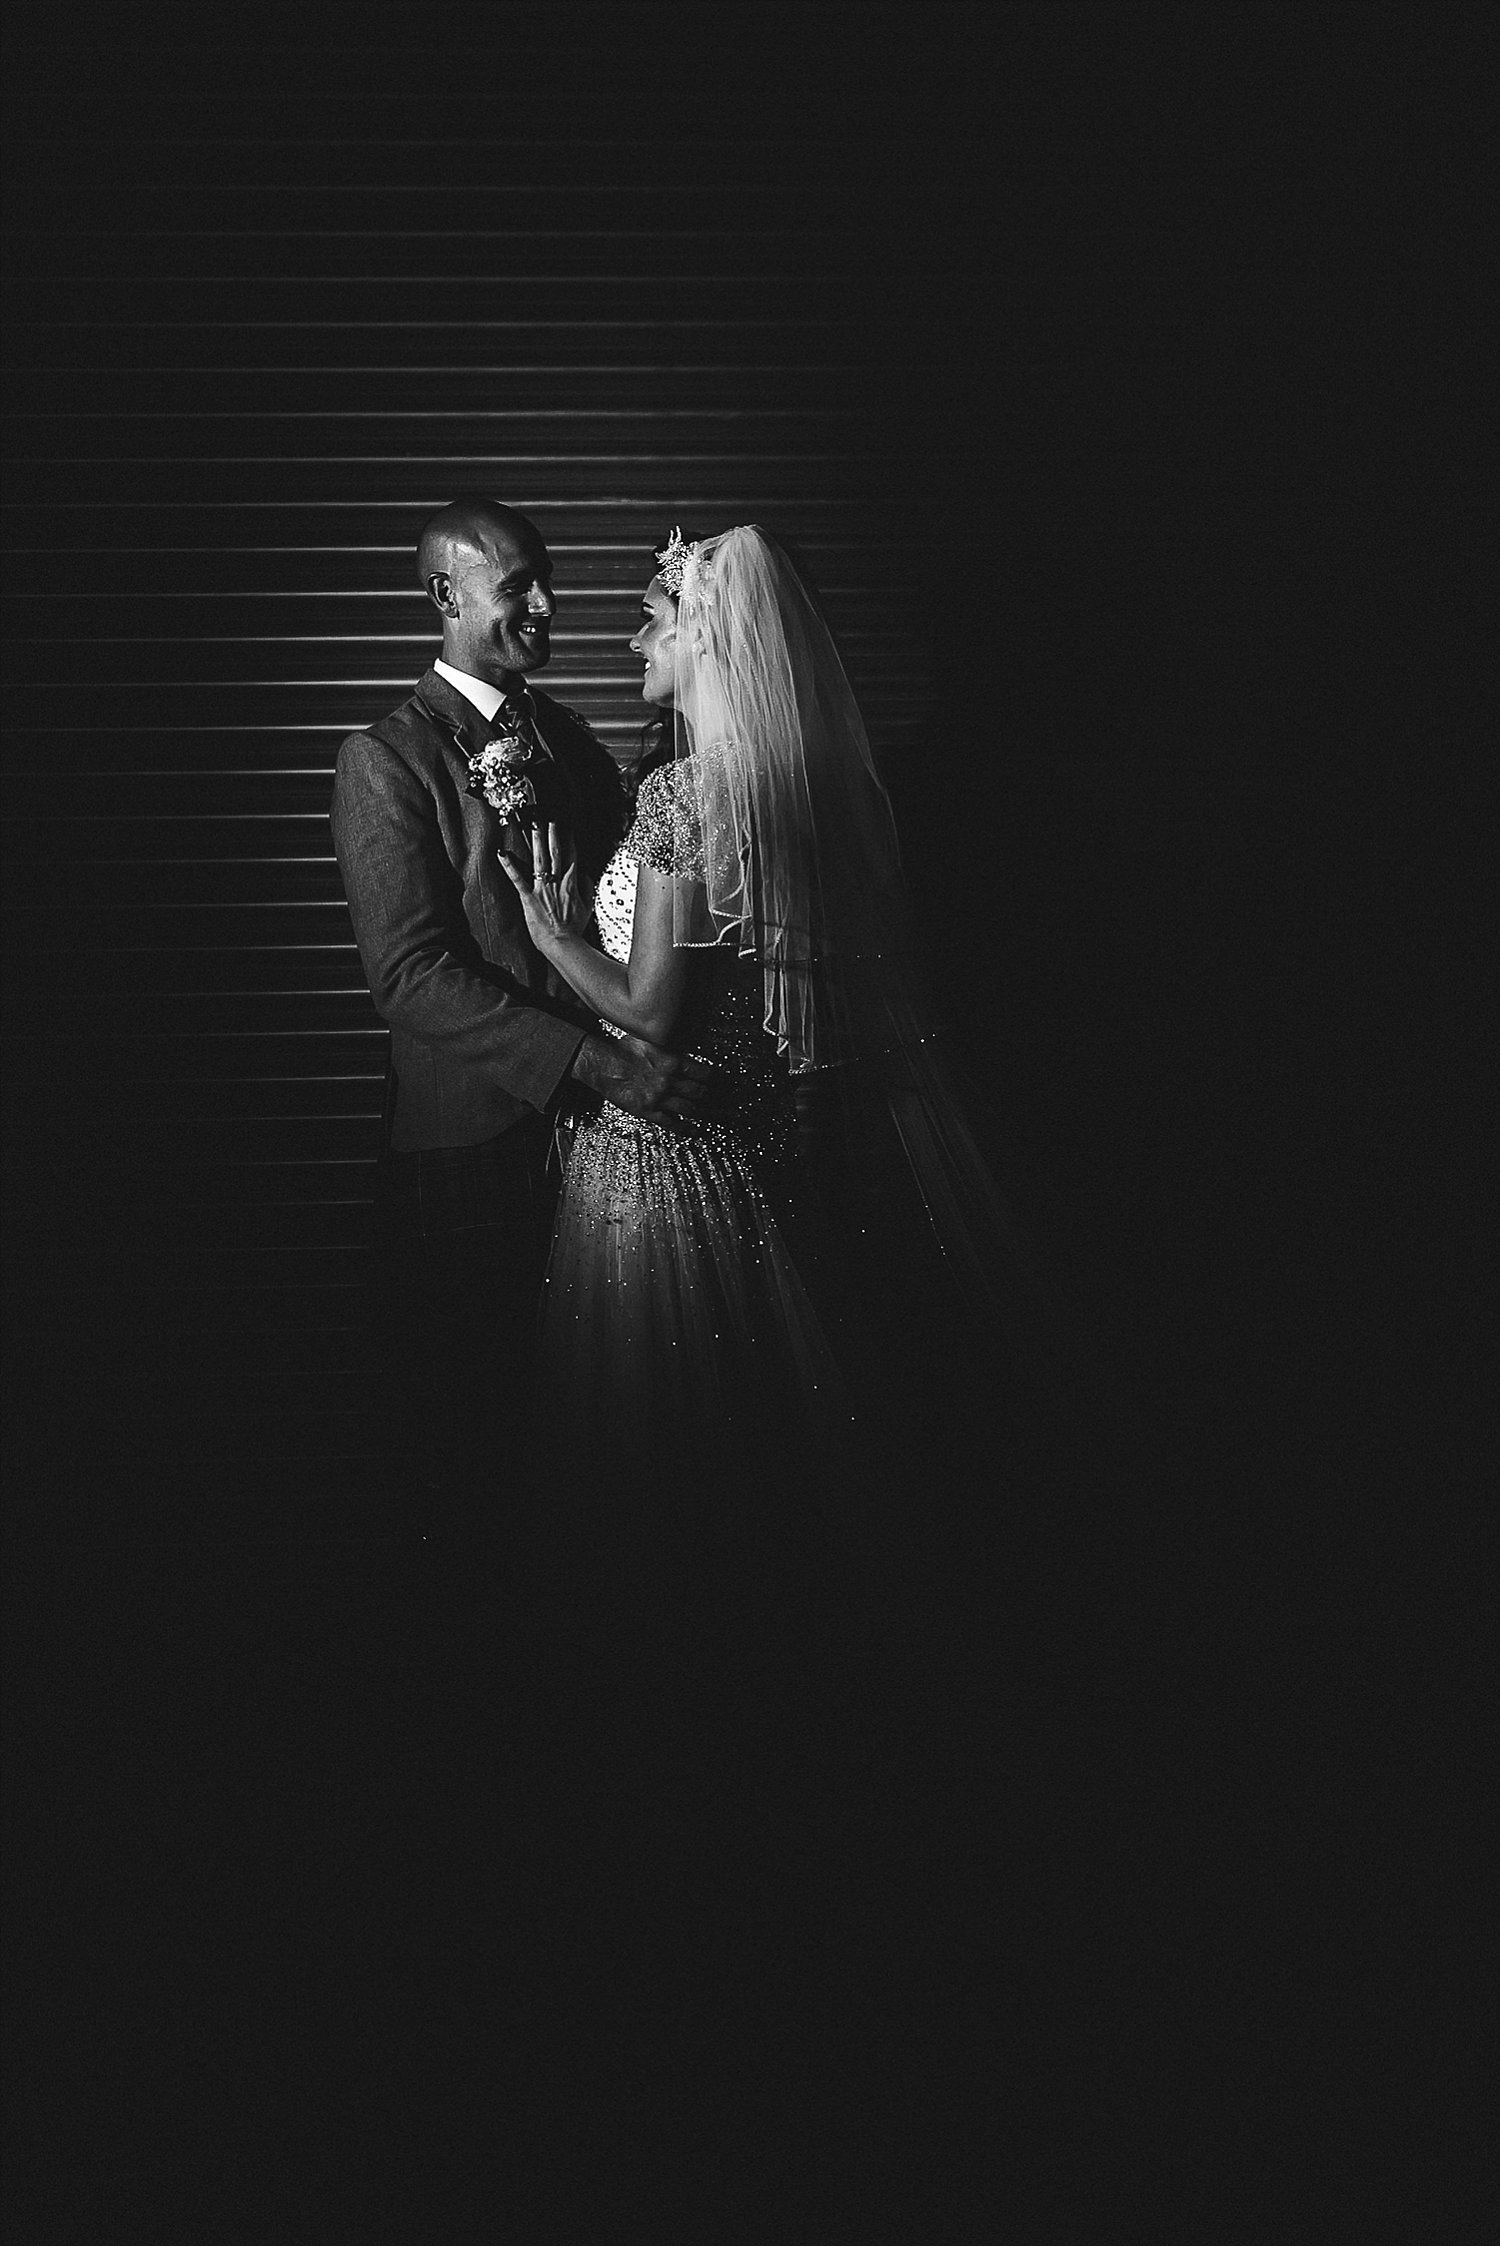 Houchins Wedding Photographer - Creative Portrait